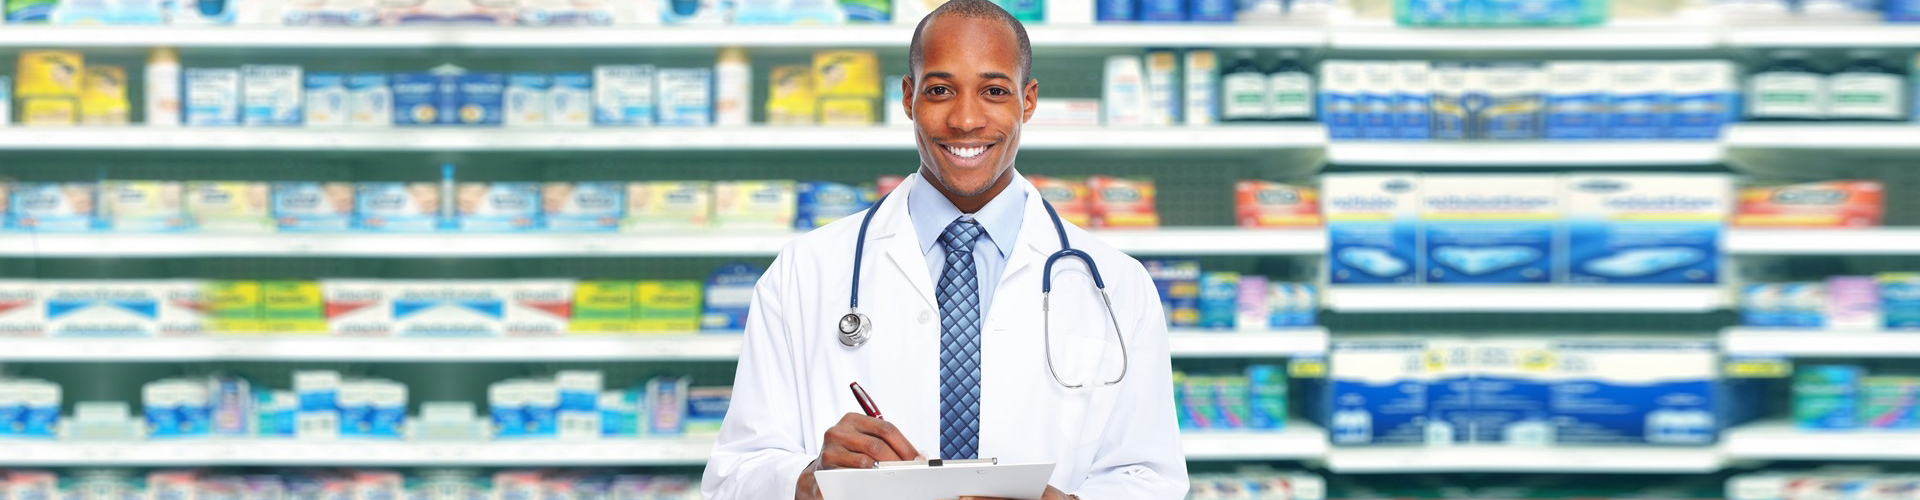 a pharmacist smiling, medicines in the background